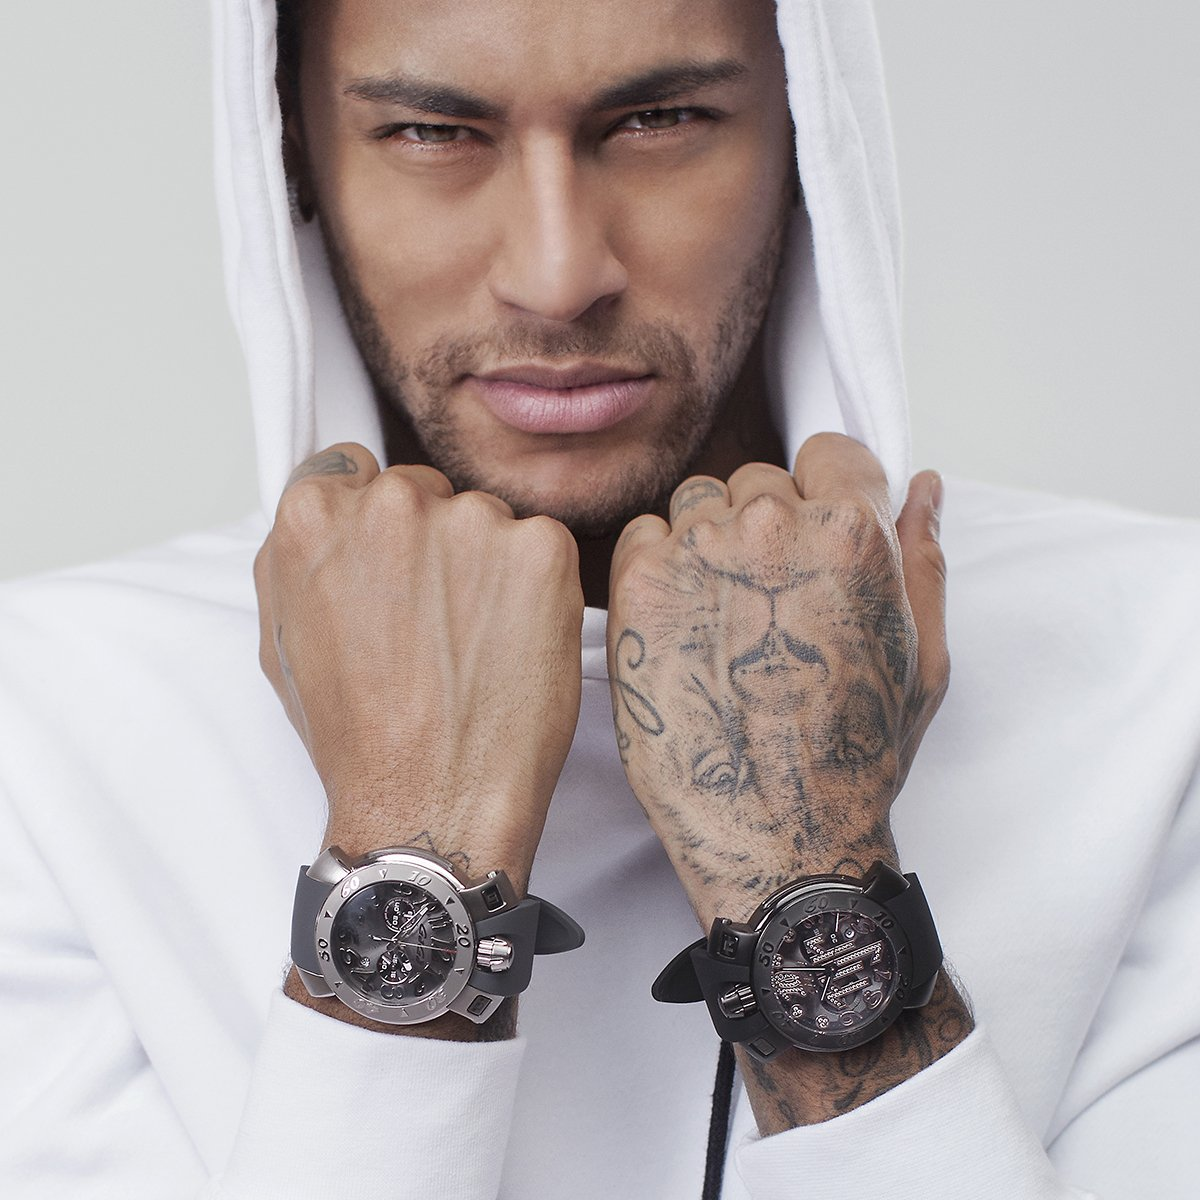 It&#39;s time to focus on new goals. @GaGaMilanoWorld #gagamilano #gagamilanowatches<br>http://pic.twitter.com/FuEFcMaEhI